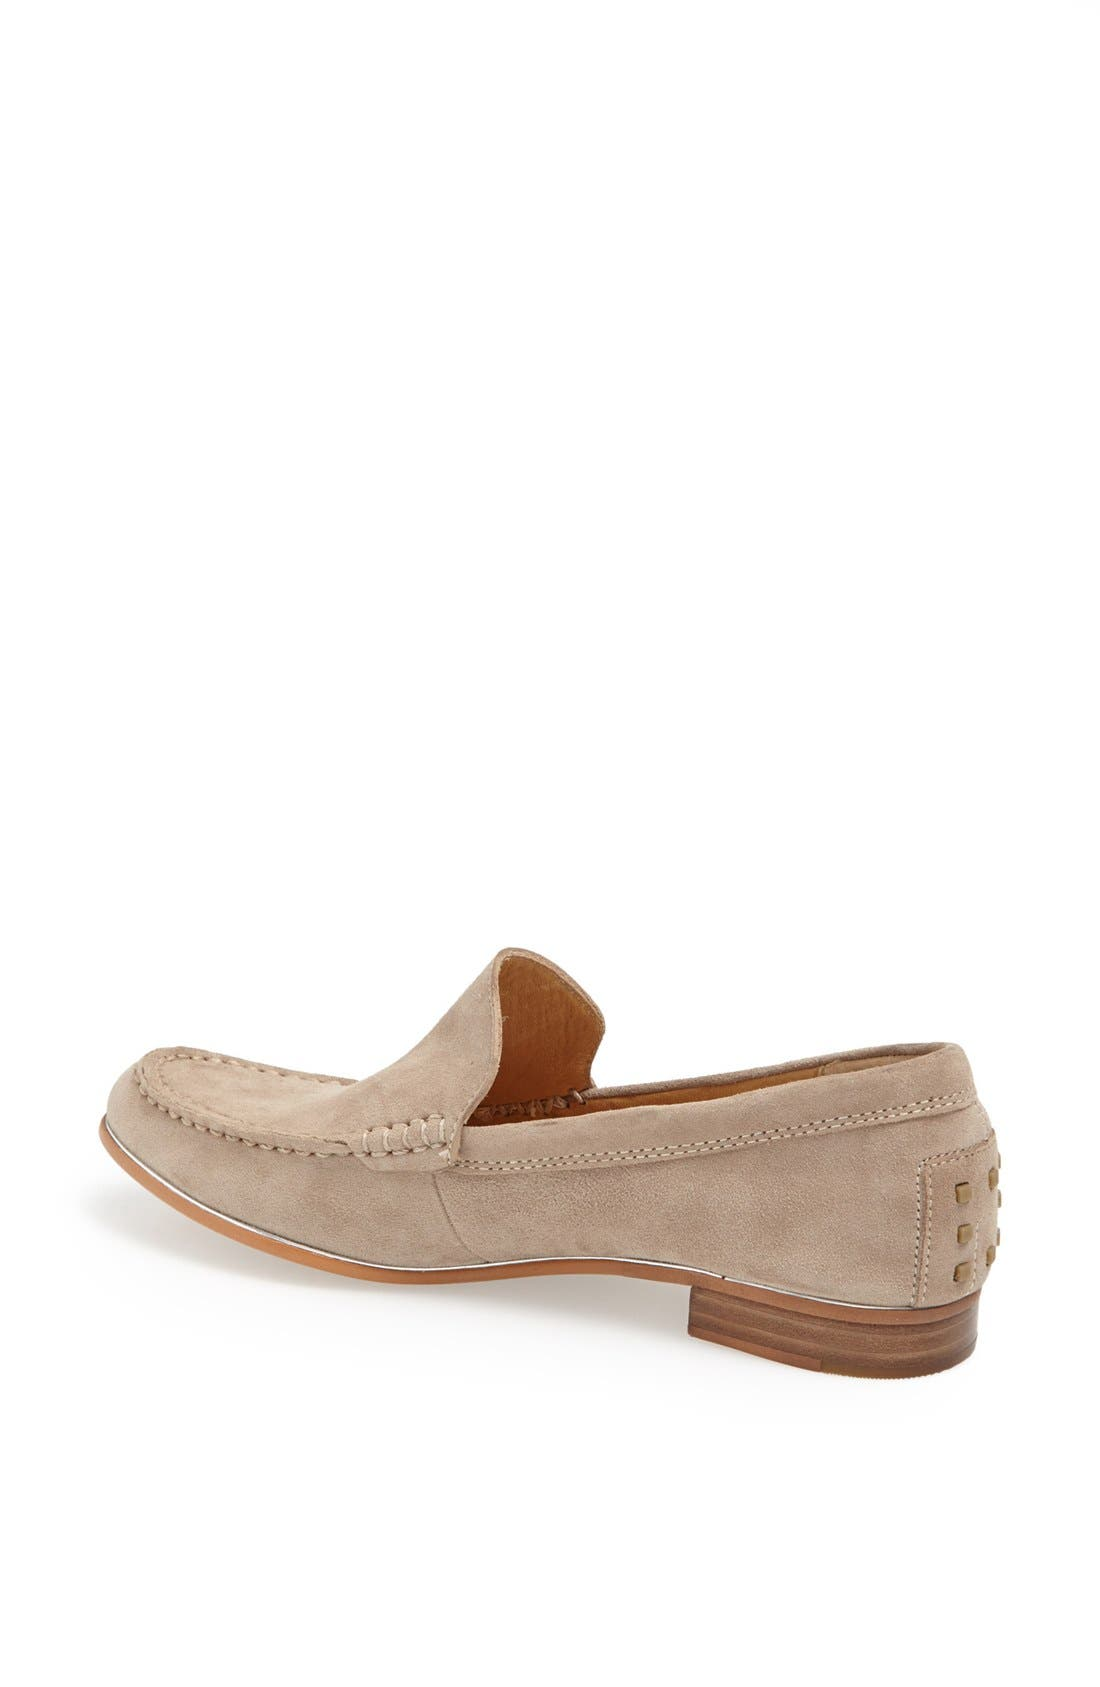 Alternate Image 2  - Dolce Vita 'Venka' Leather Flat